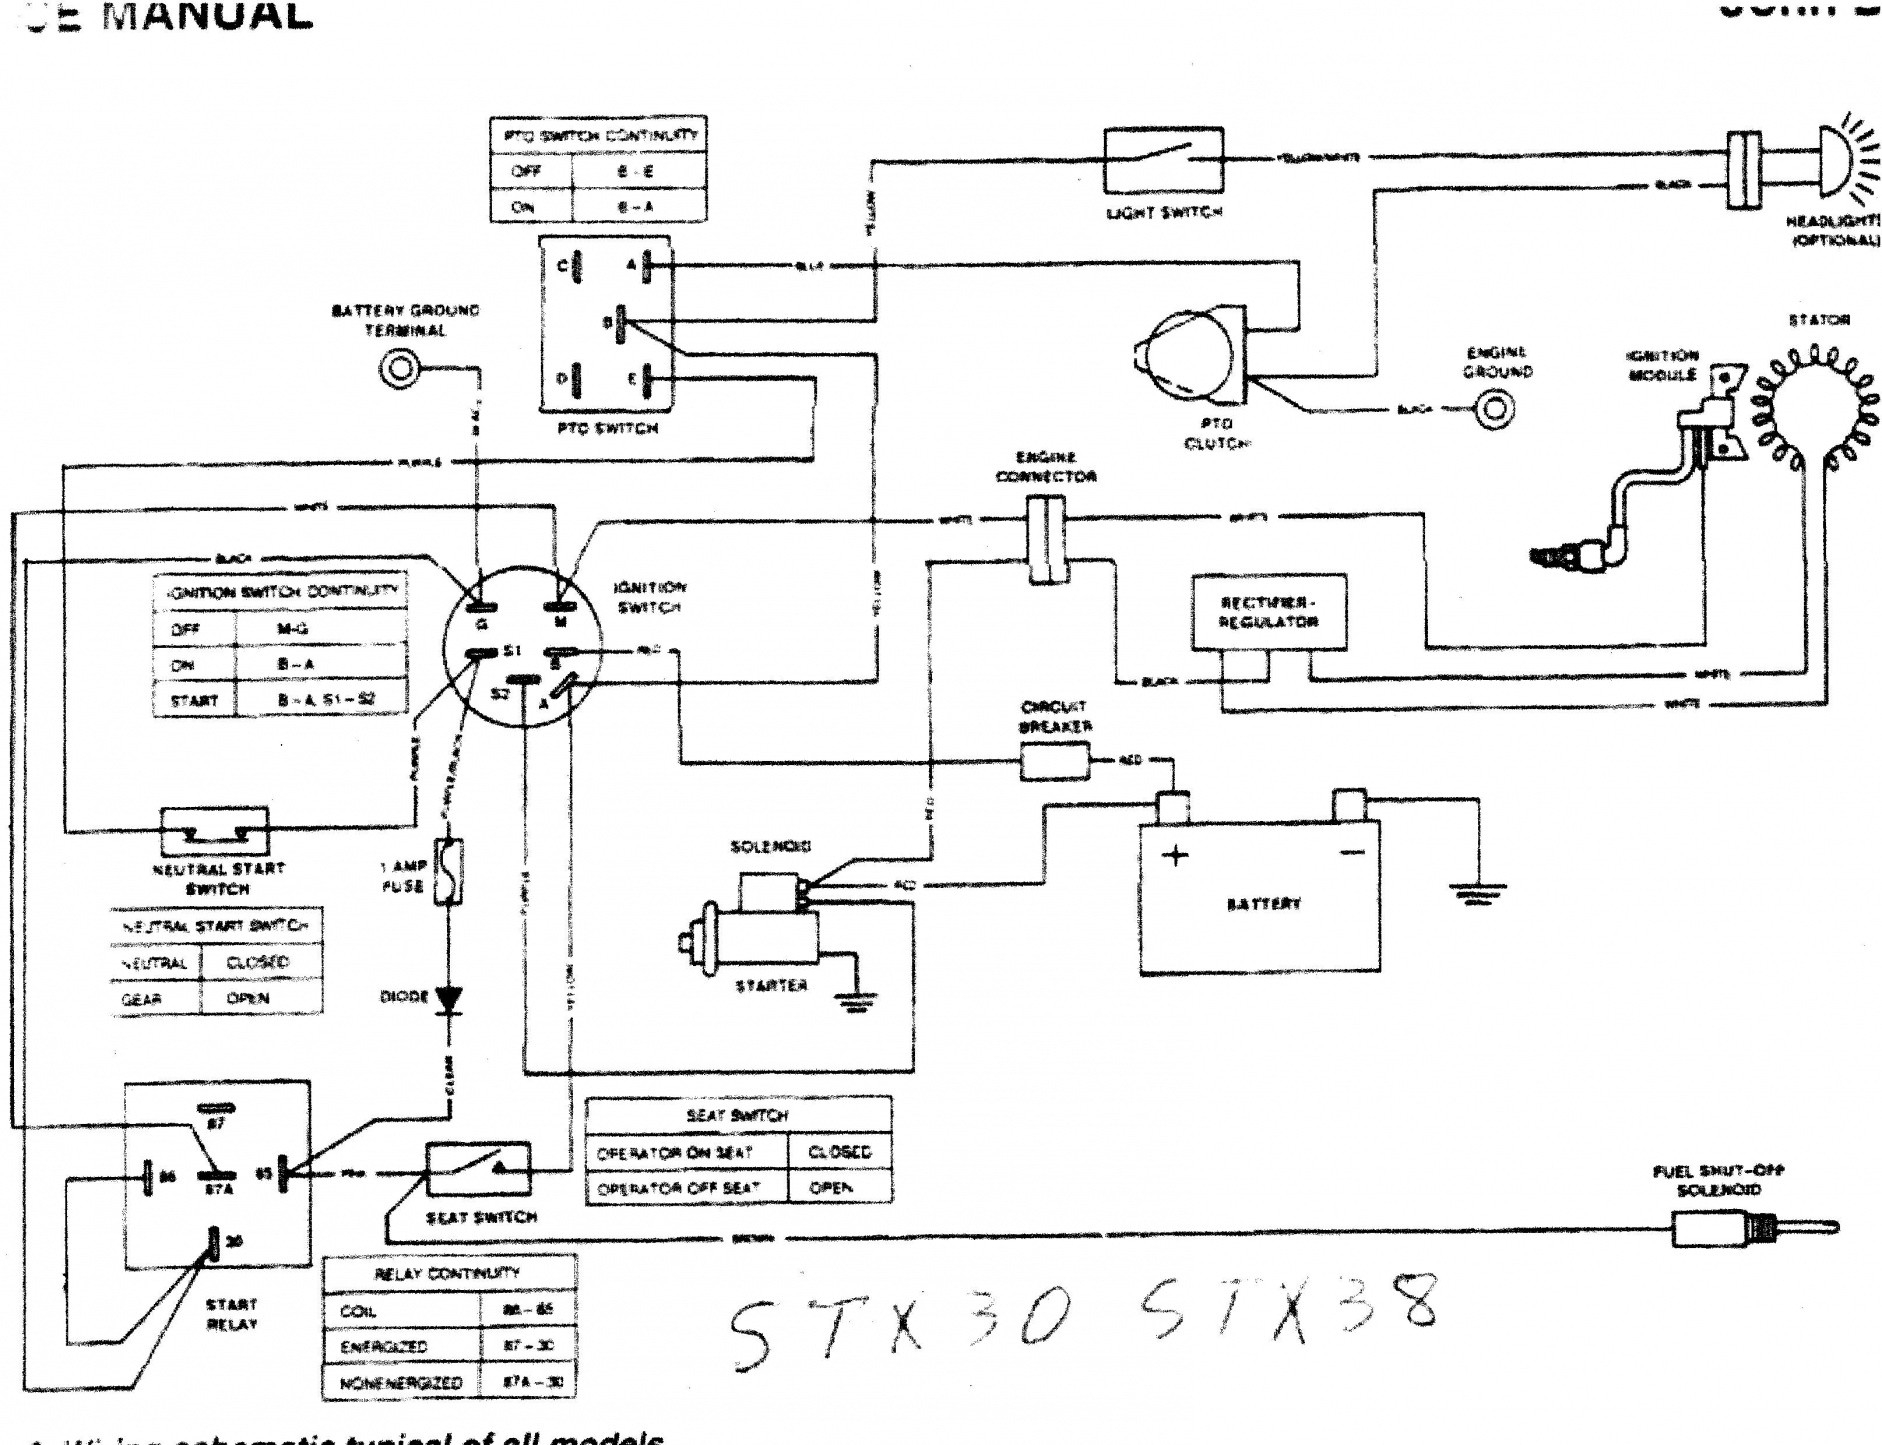 john deere 825i wiring diagram john deere 420 wiring diagram colored #5